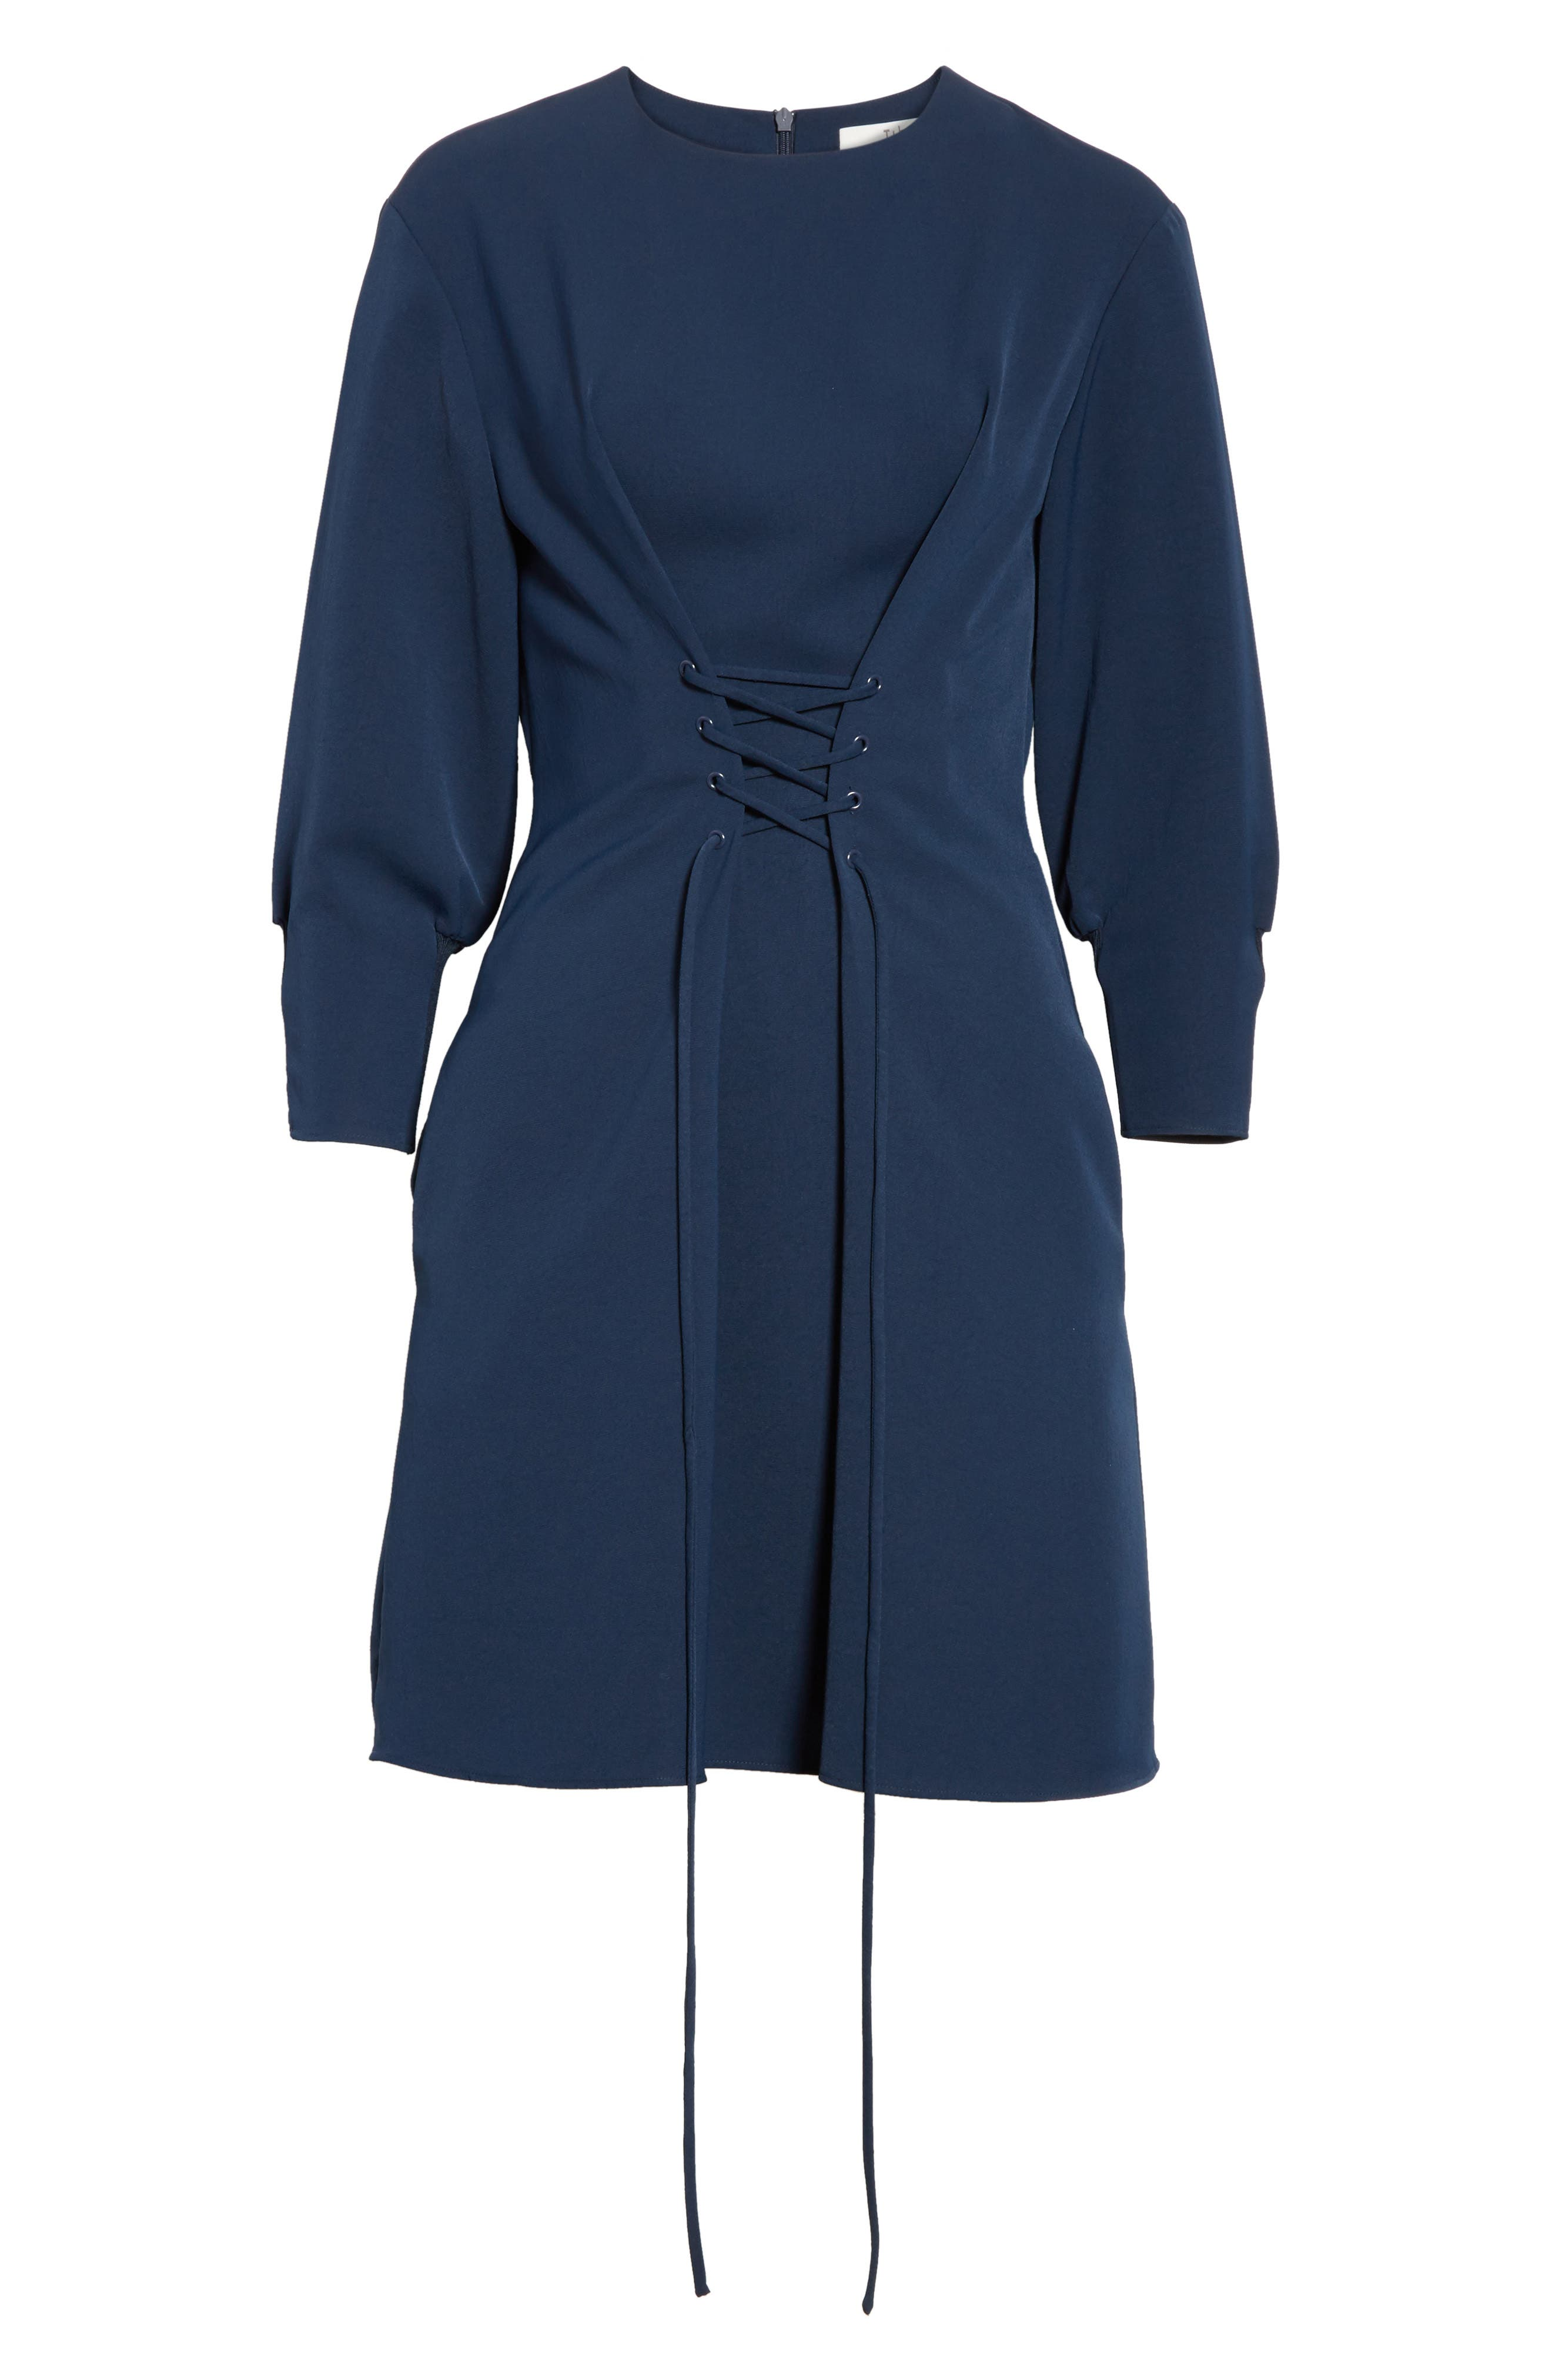 Lace-Up Draped Twill Dress,                             Alternate thumbnail 6, color,                             Navy